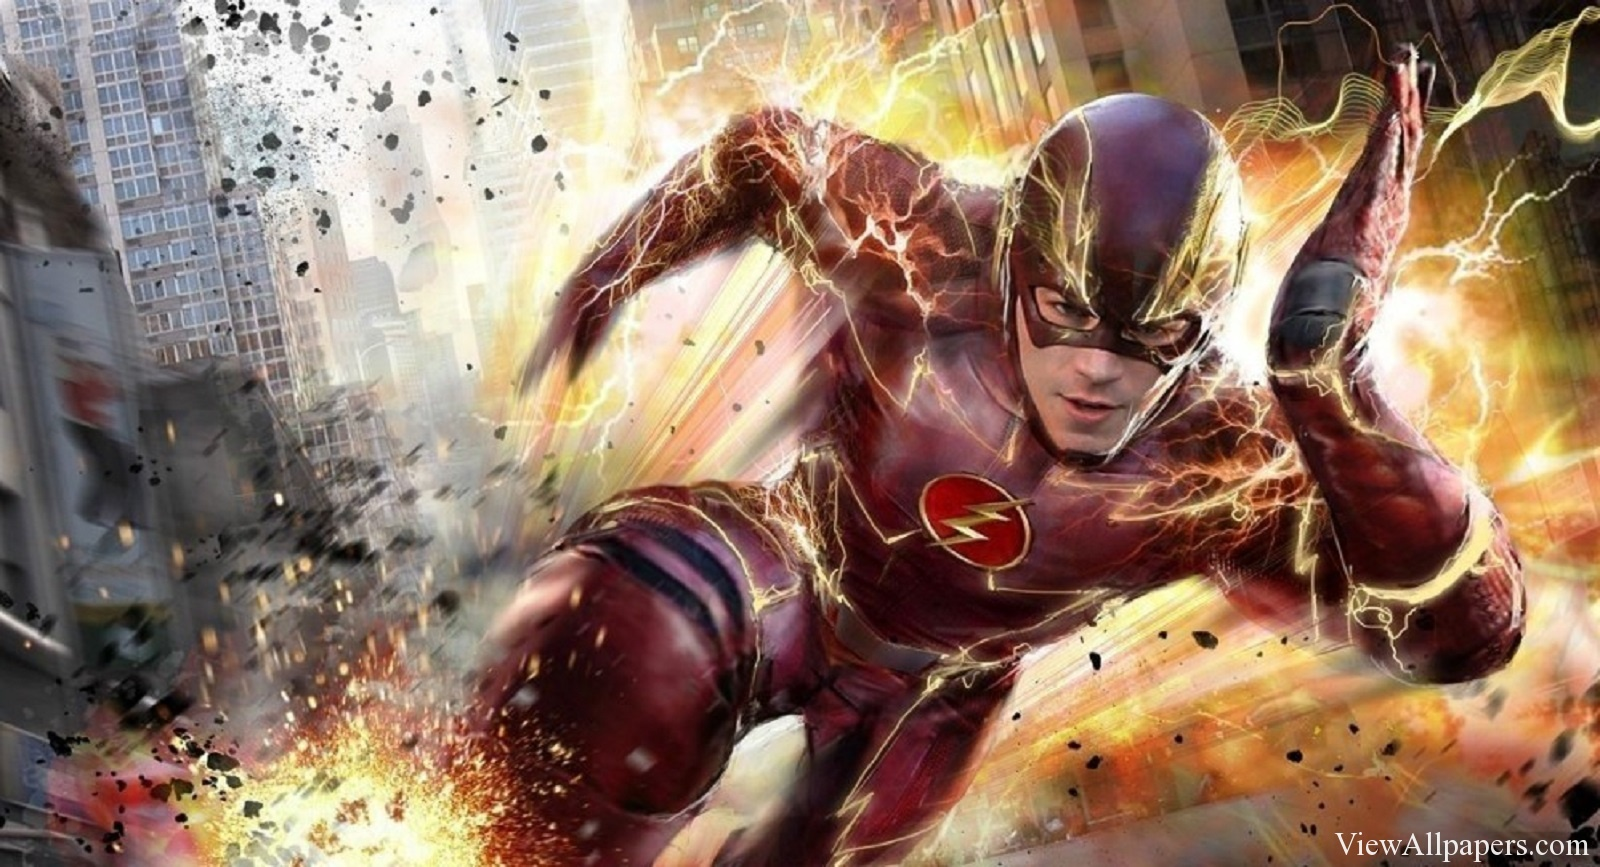 Resolution Wallpaper download The Flash Television Show For PC 1600x867